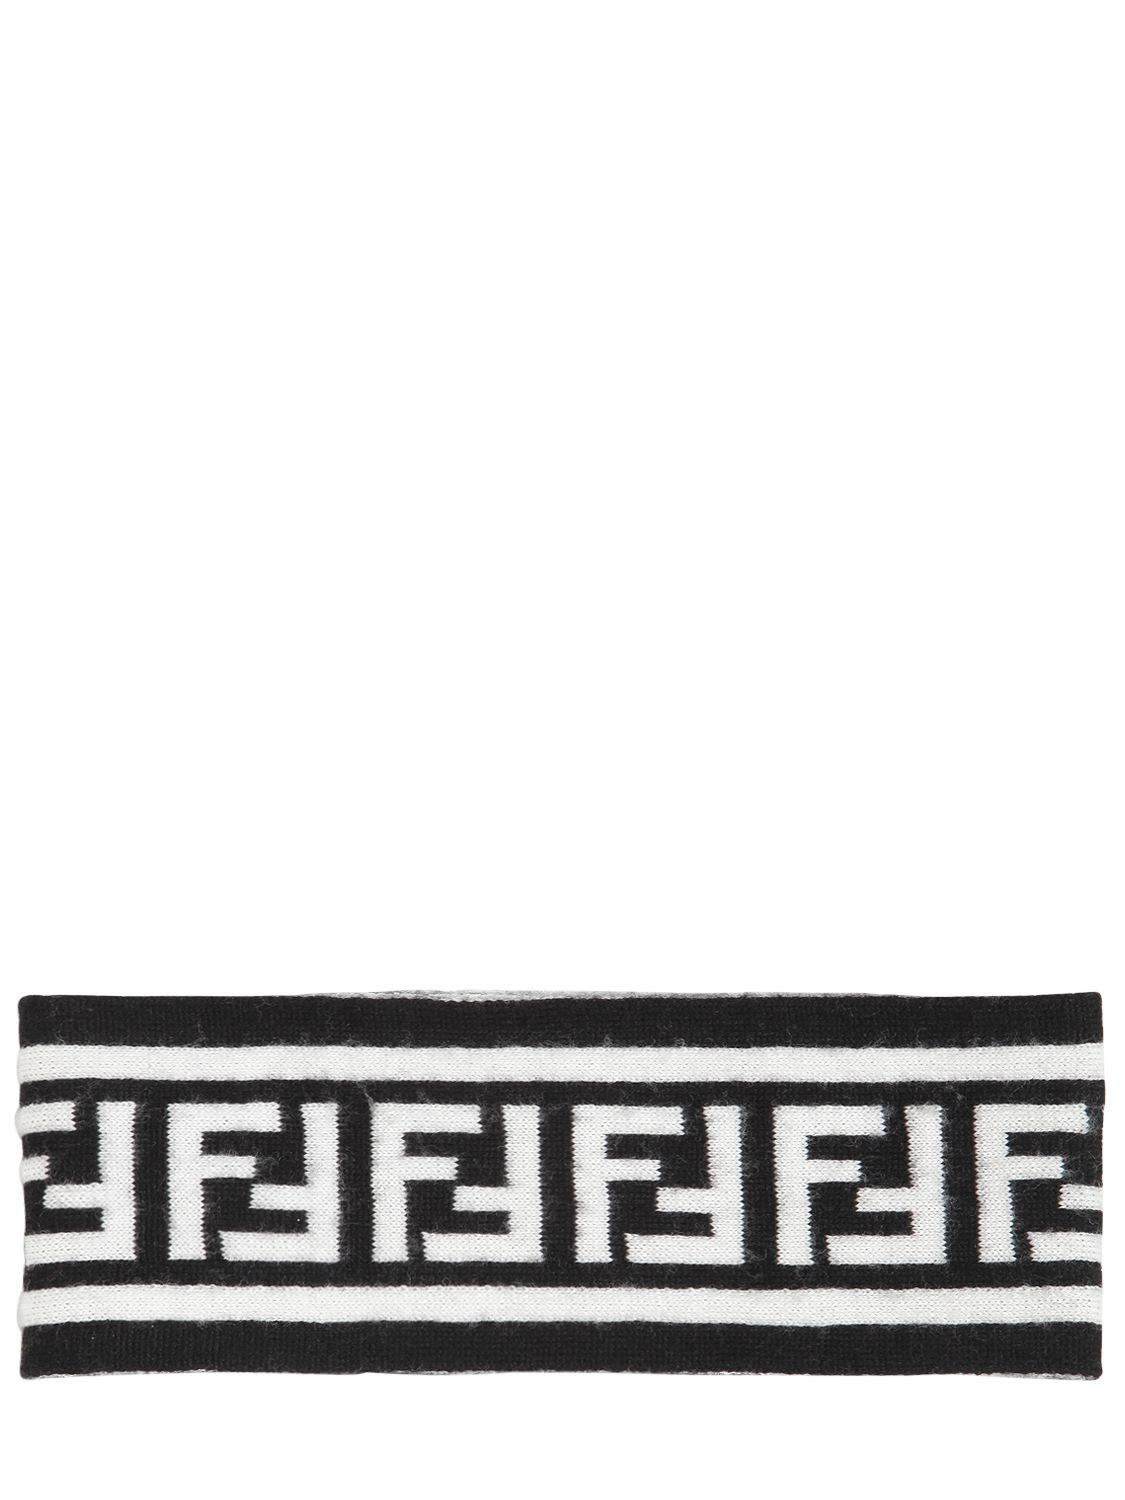 038dae53f2a1 Fendi Ff Motif Headband in Black for Men - Lyst